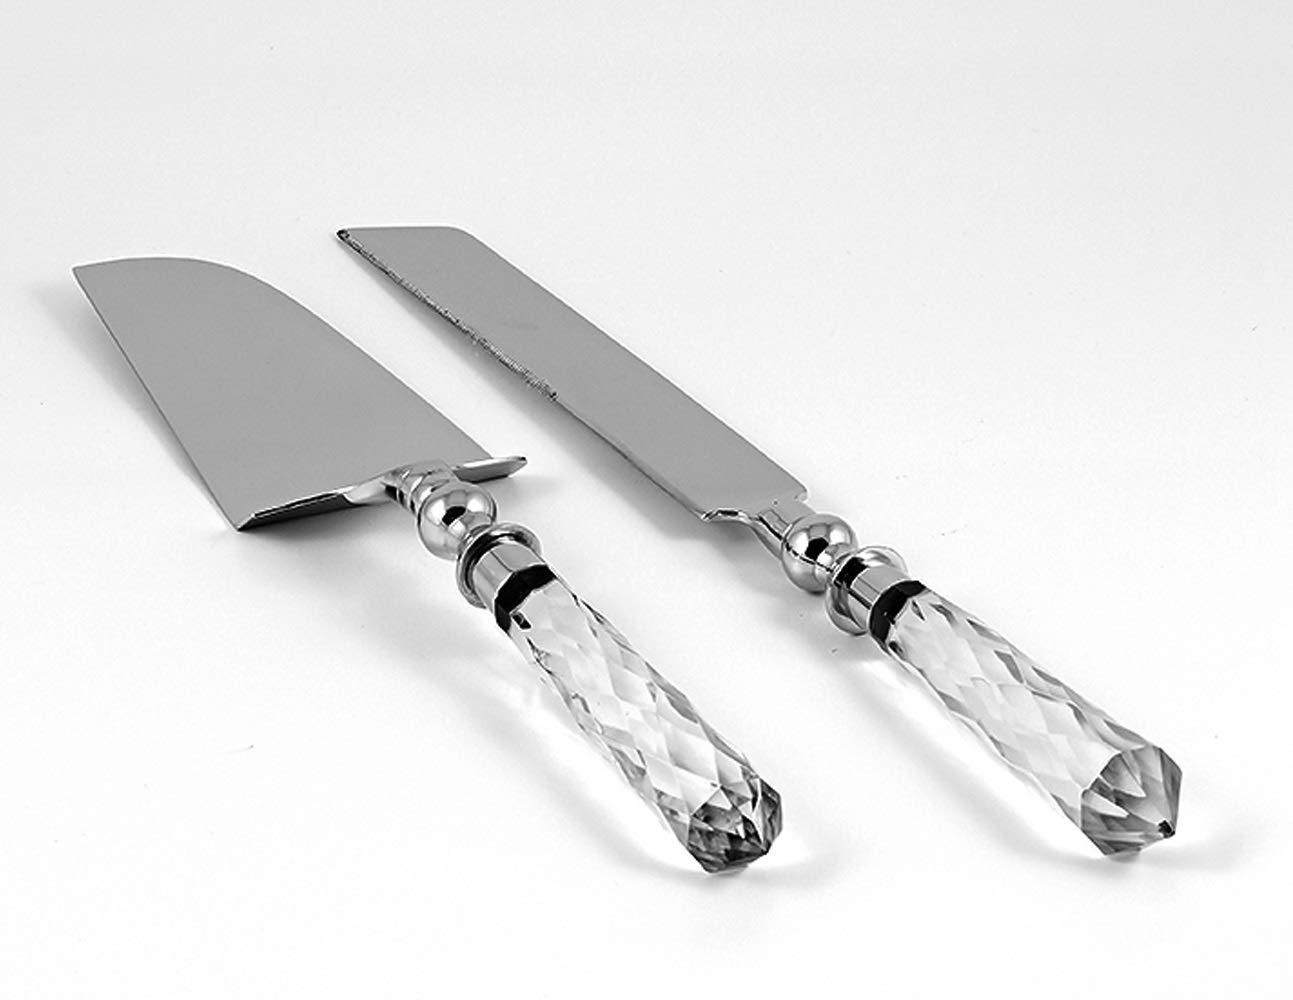 Wedding Cake Knife and Server Set - Cake Cutter with Knife - Cutting Utensils - For Bride and Groom - with Crystal Handles - Knife 13.25'' Long - Server 12'' Long - by Barski - Gift Boxed by Barski